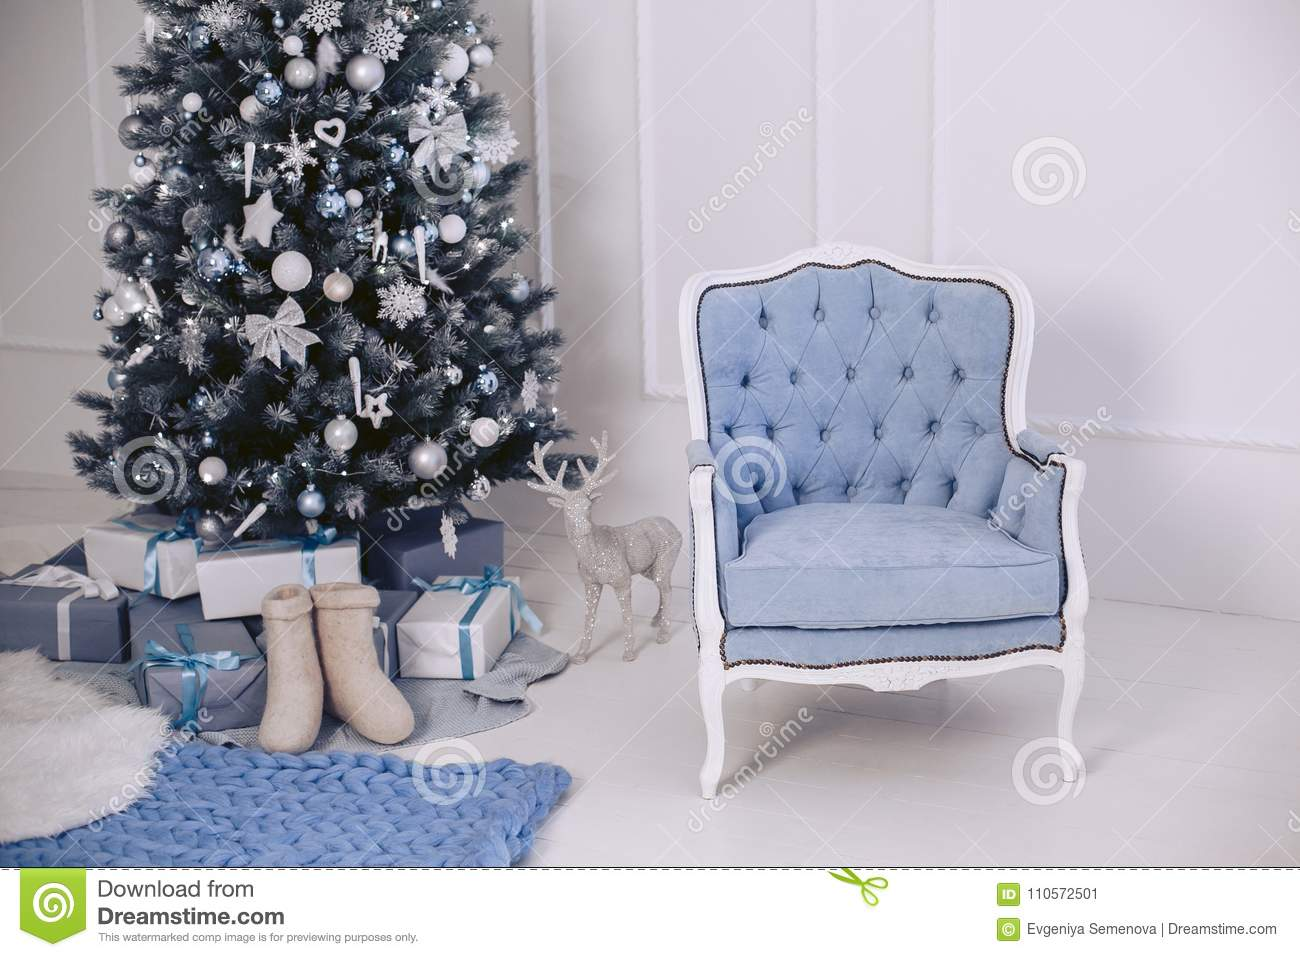 A blue modern elegant chair in the New Year`s interior. Christmas tree with decorations. Gifts in packages